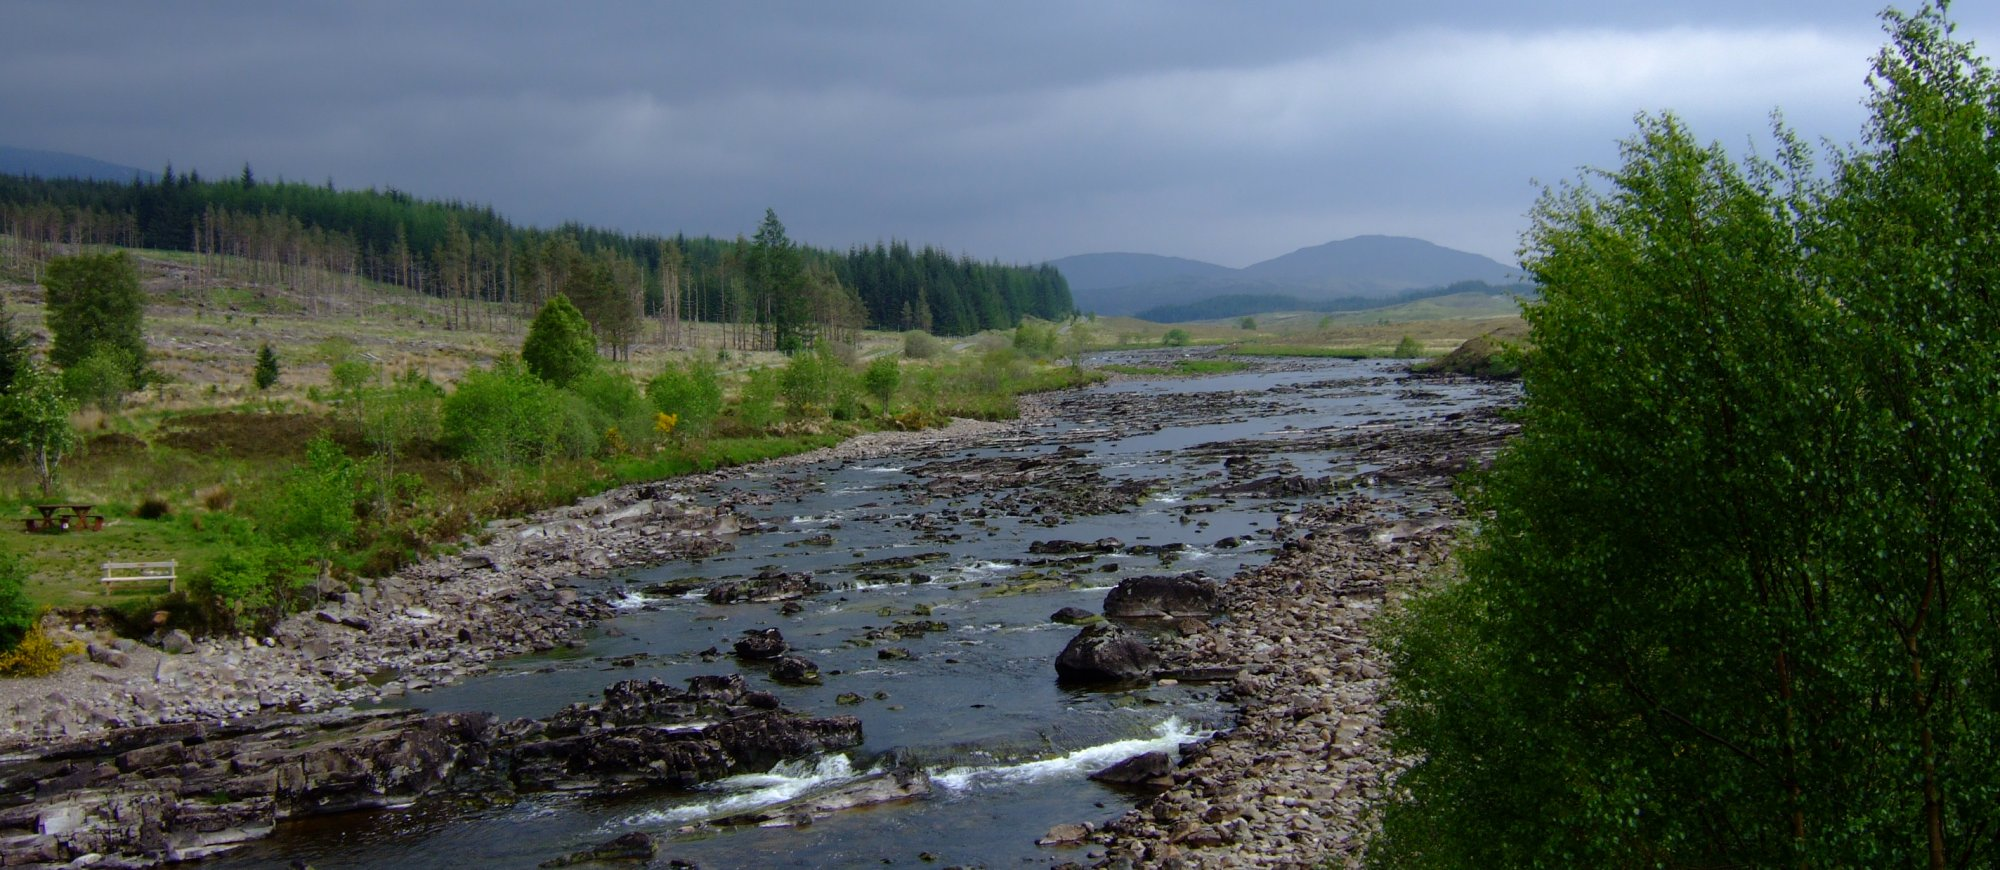 Looking north from the parapet of the Bridge of Orchy